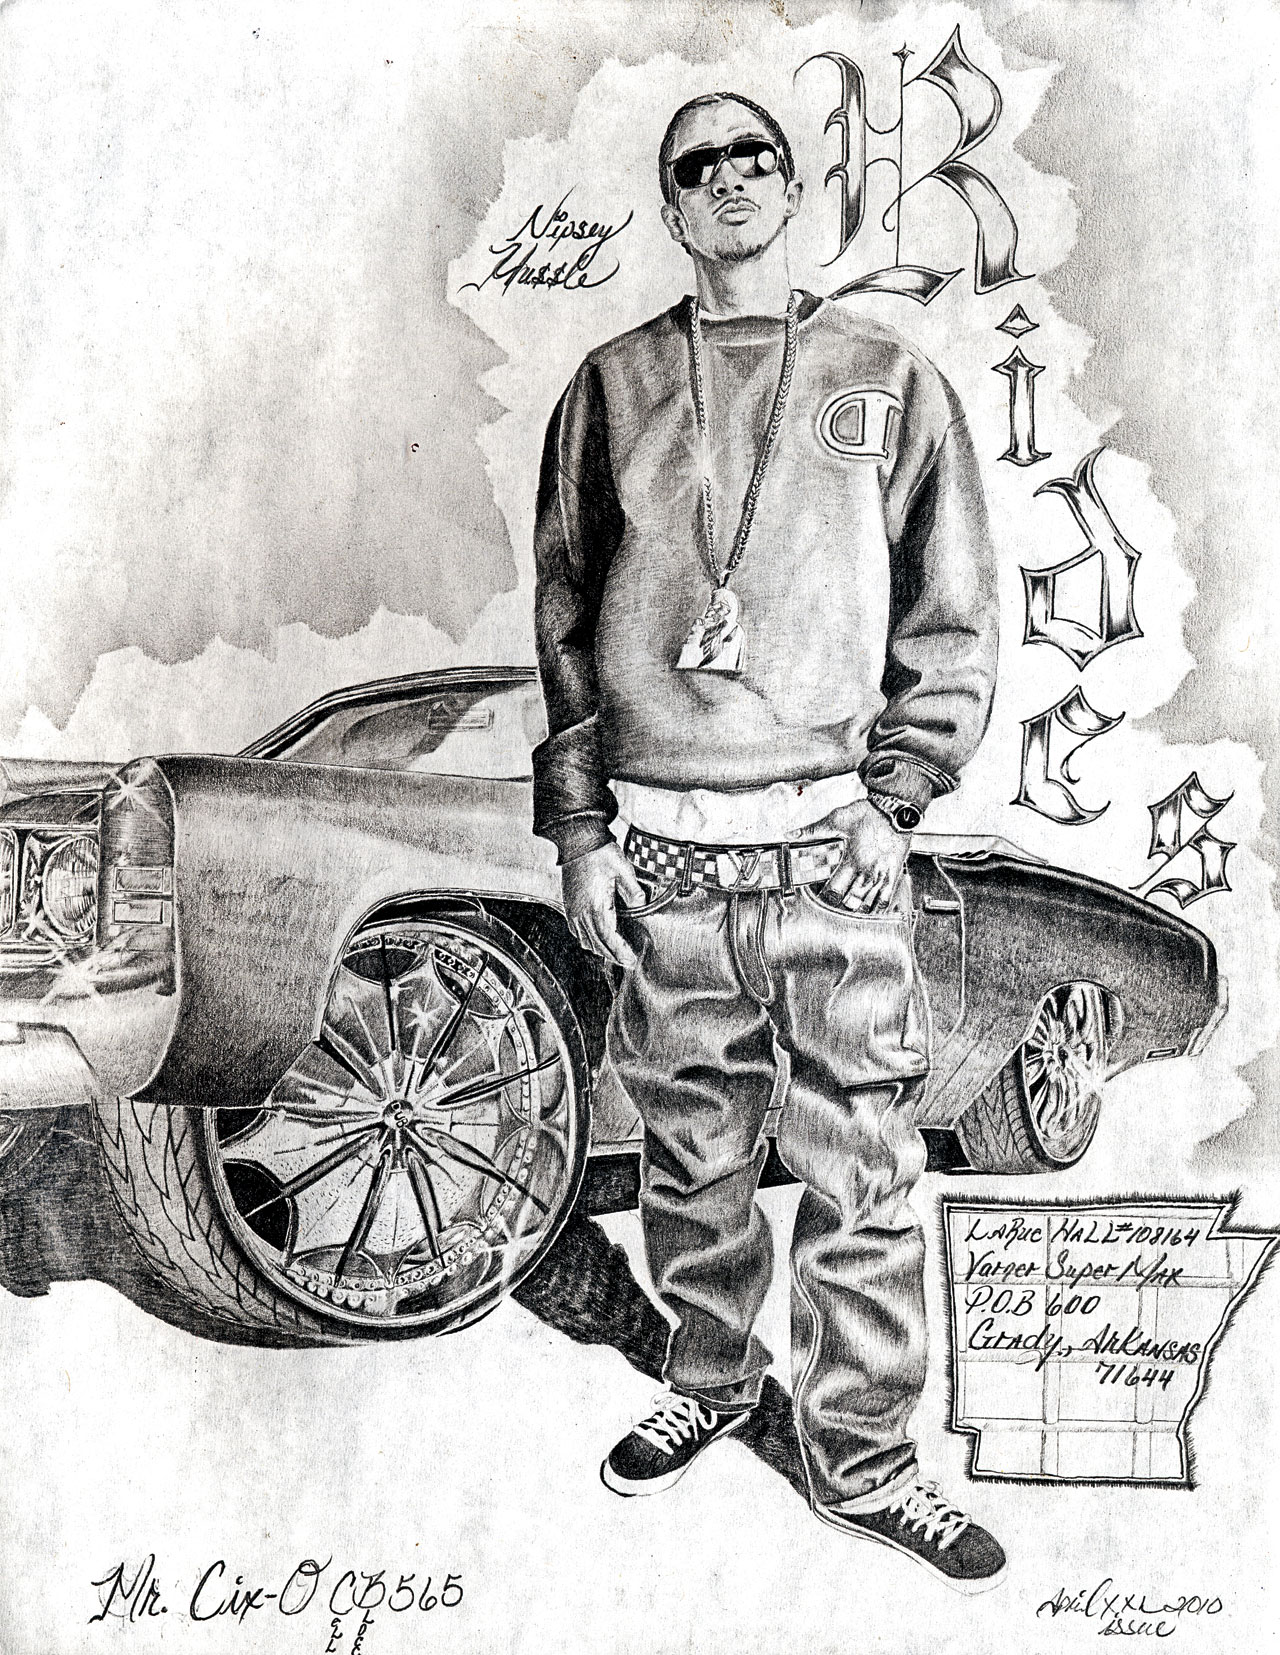 rides cars mr cix grady arkansas drawing art